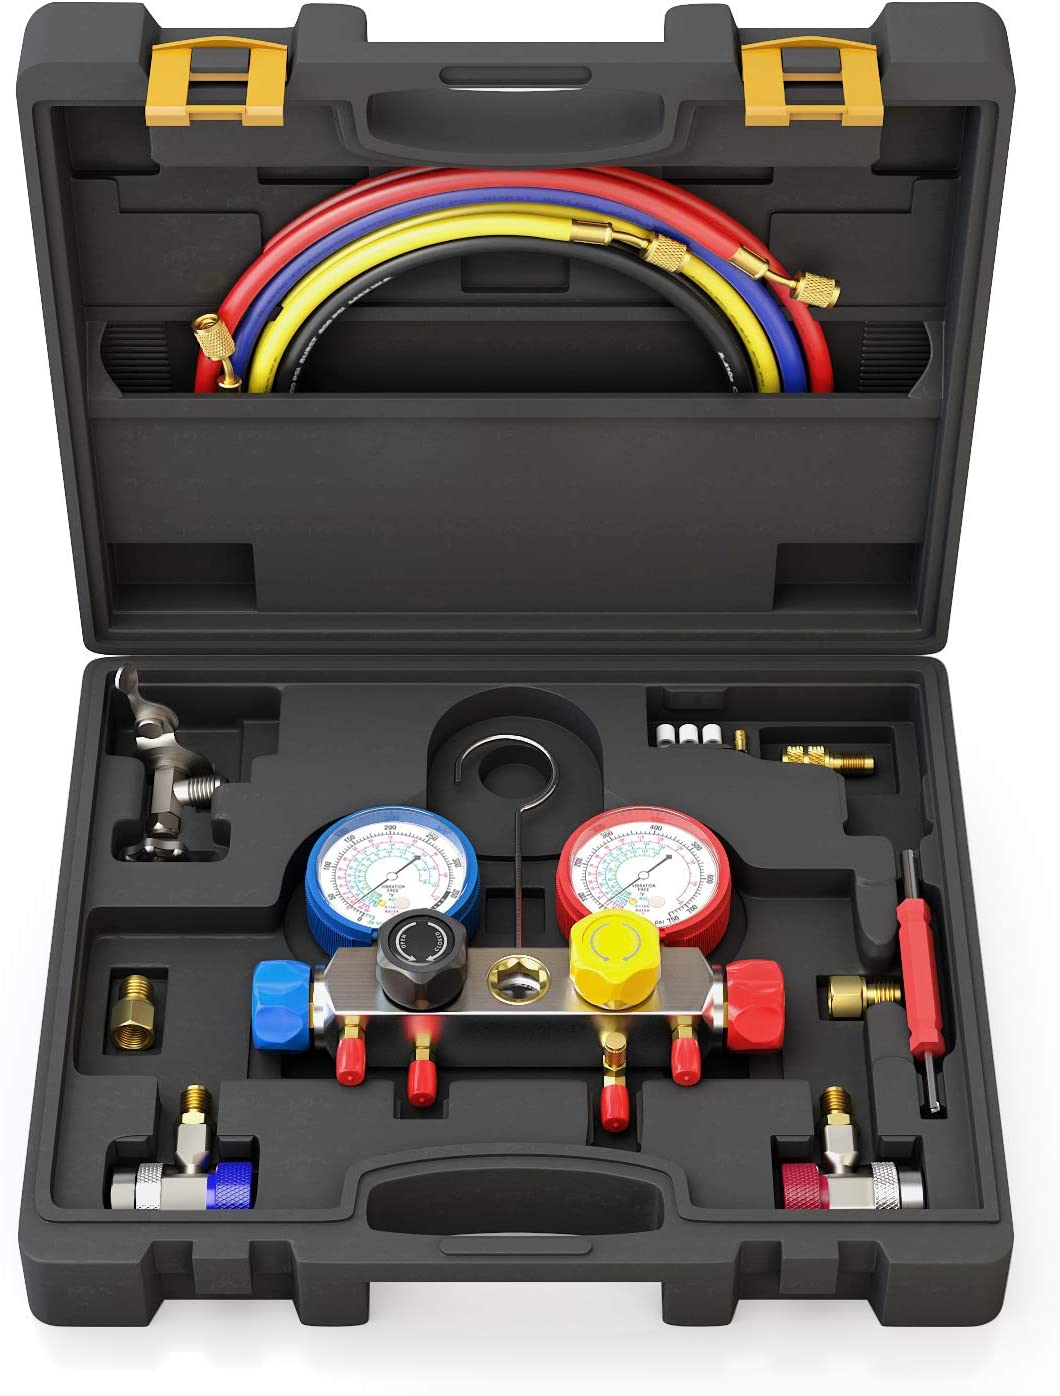 AURELIO TECH 4 Way AC Manifold Gauge Set Fits R134A R410A and R22 Refrigerants with 5 Feet Hose 3 Acme Tank Adapters Adjustable Couplers and Can Tap